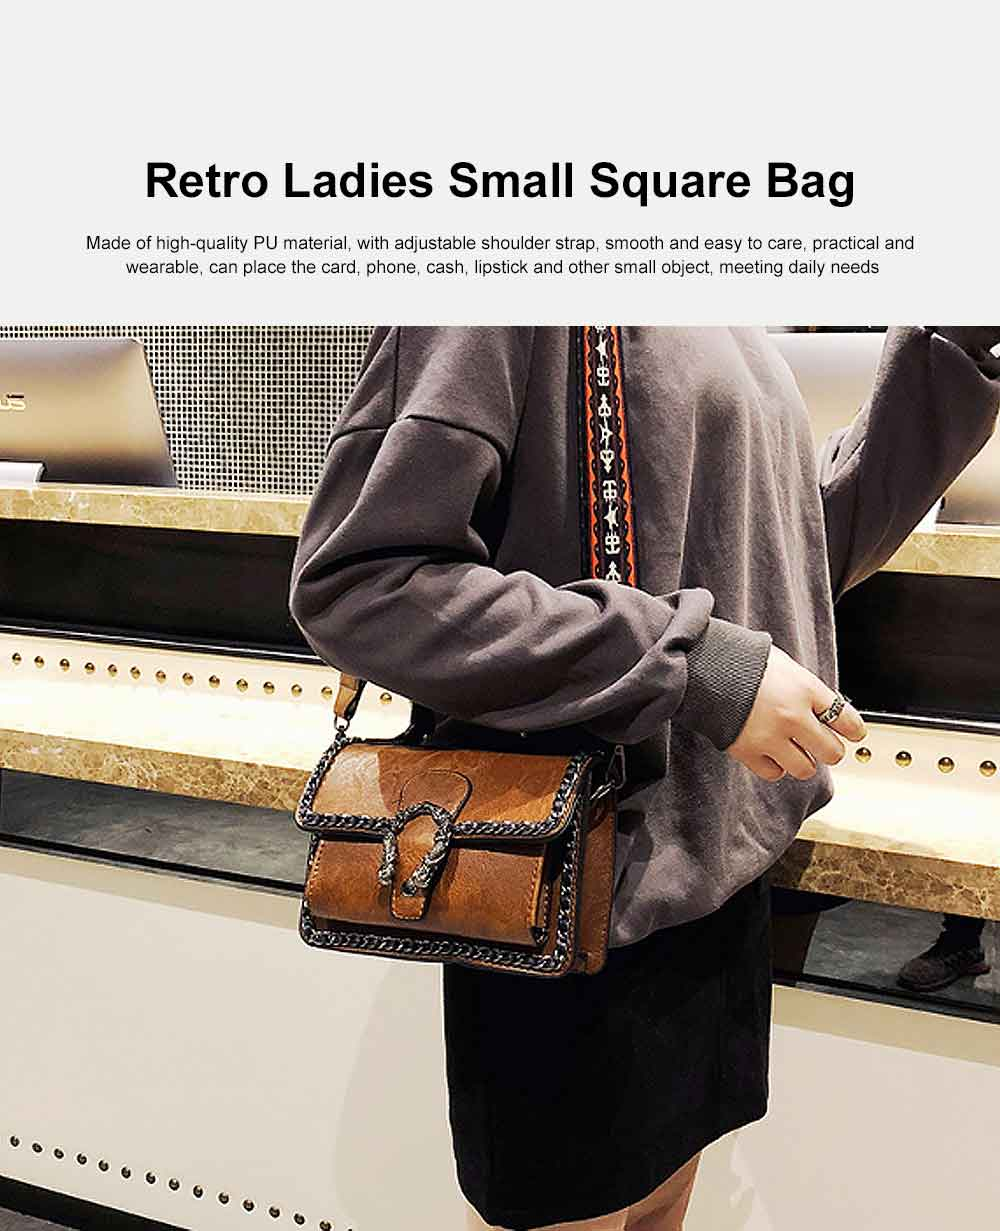 Retro Ladies Small Square Bag, Wild Wide Shoulder Bag, with Simple and Comfortable Portable Design 0